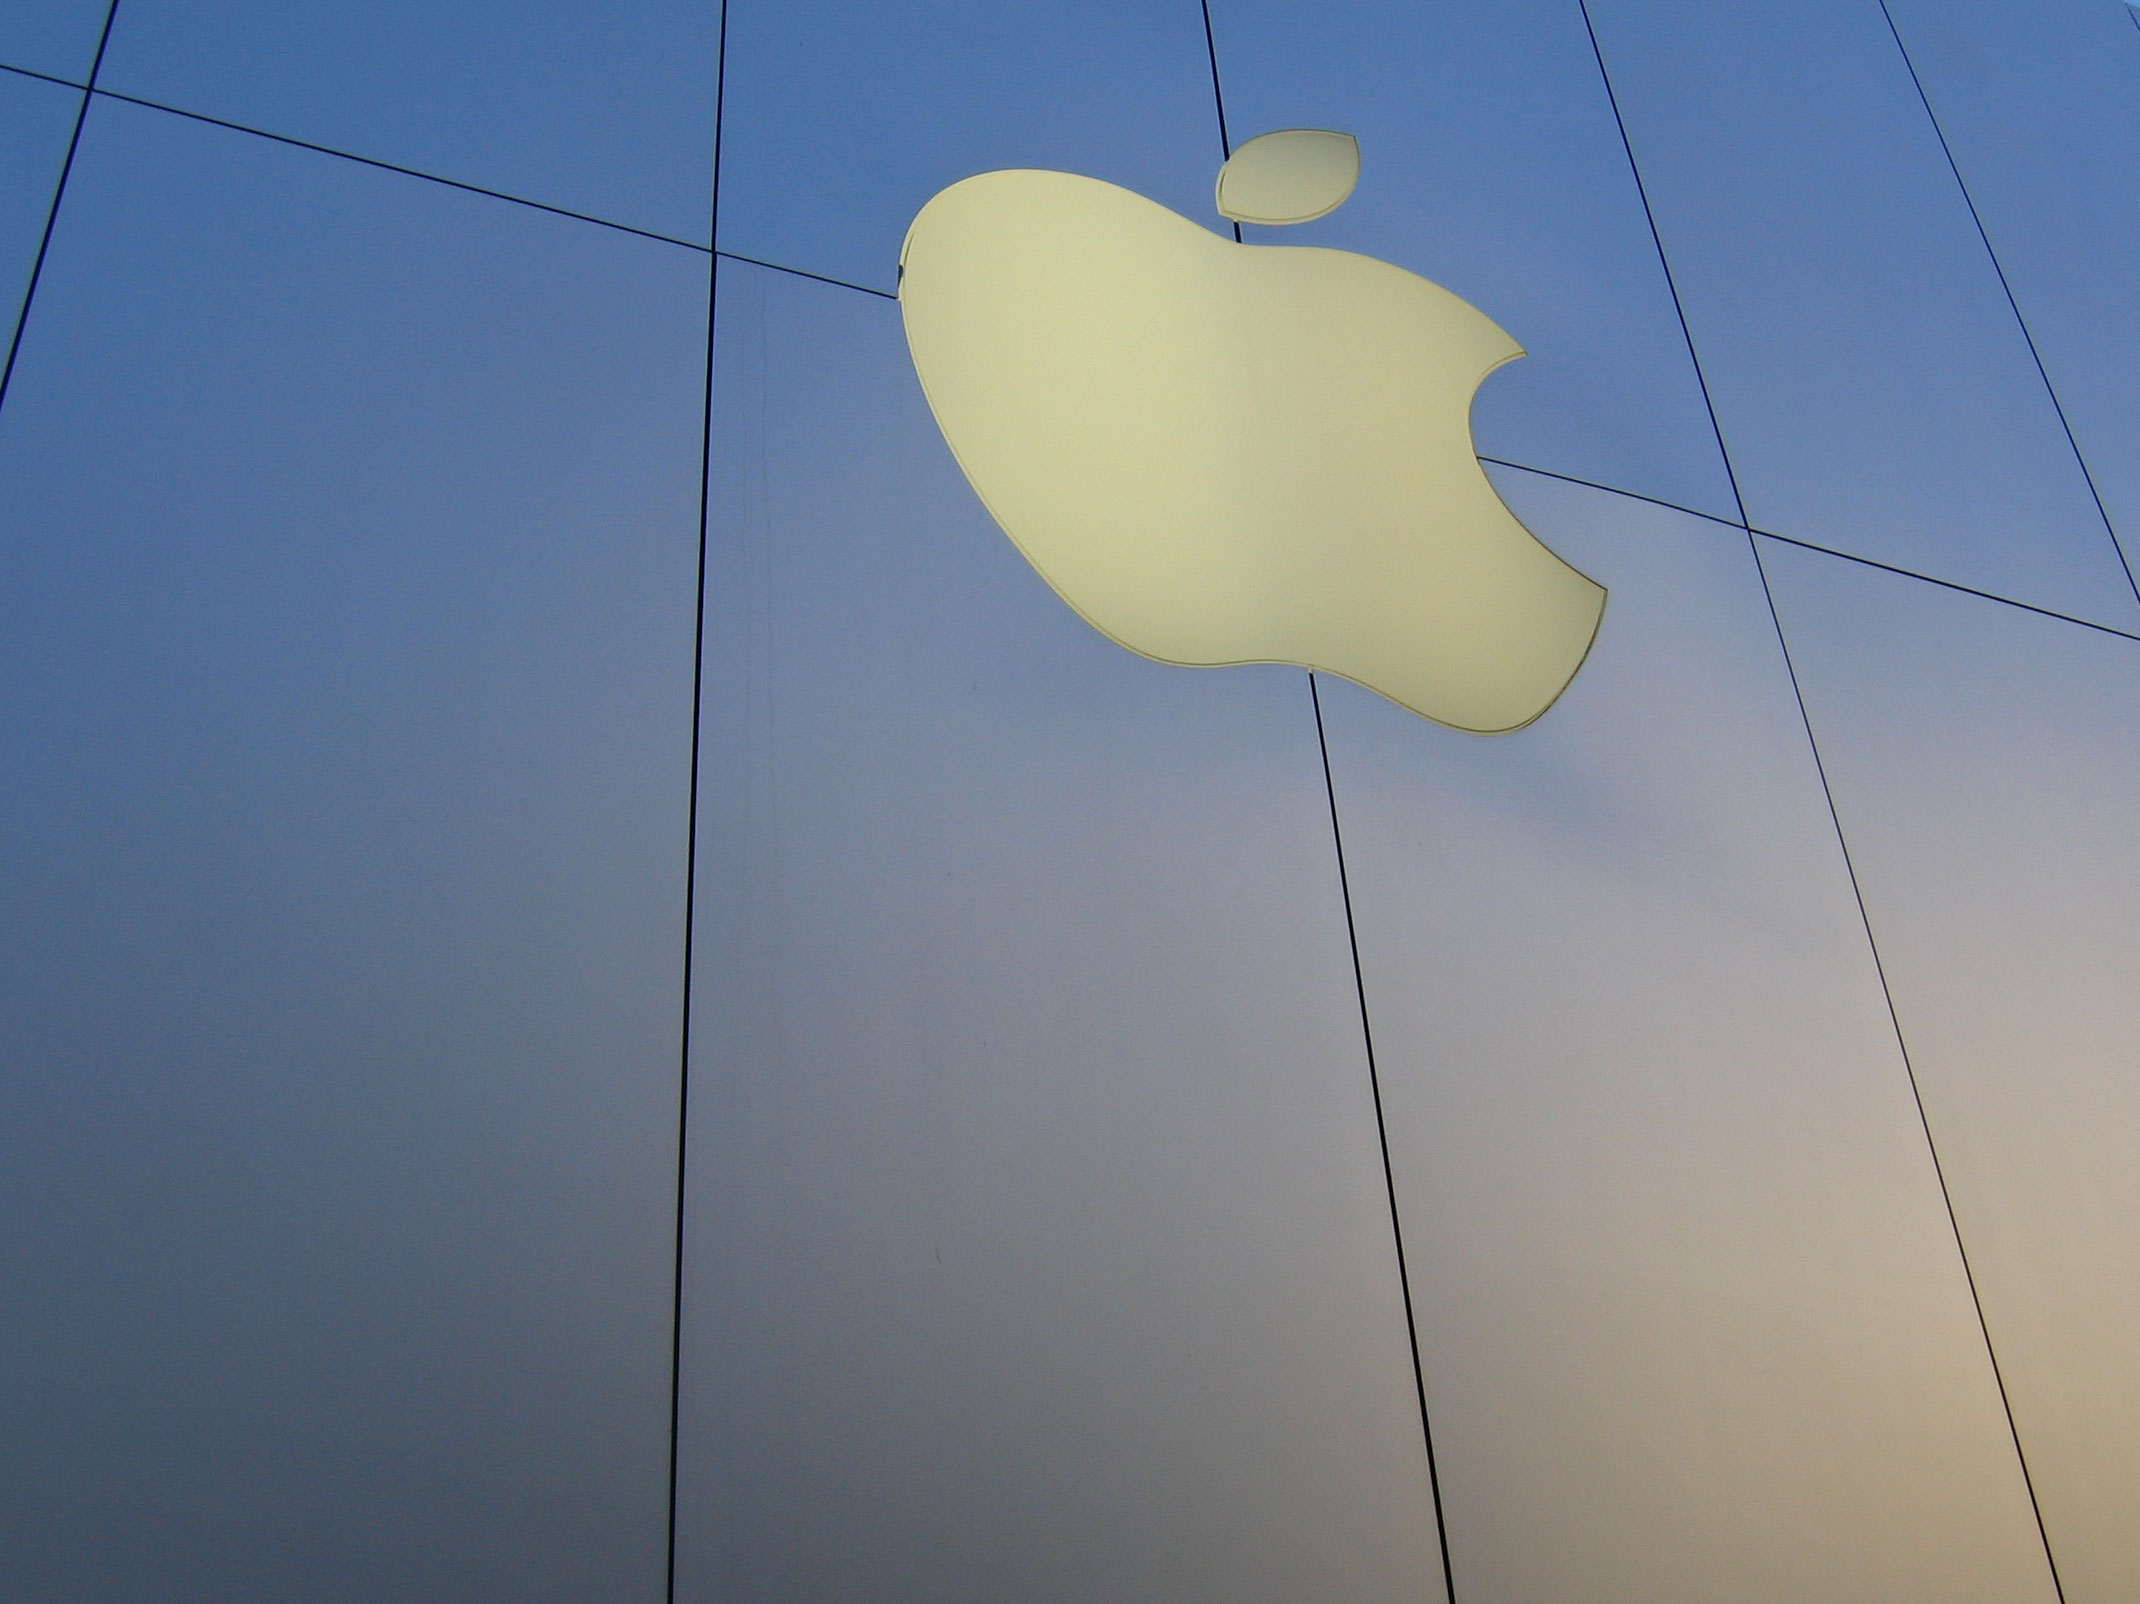 Apple and Dropbox partner with the EFF to fight for user privacy in Congress